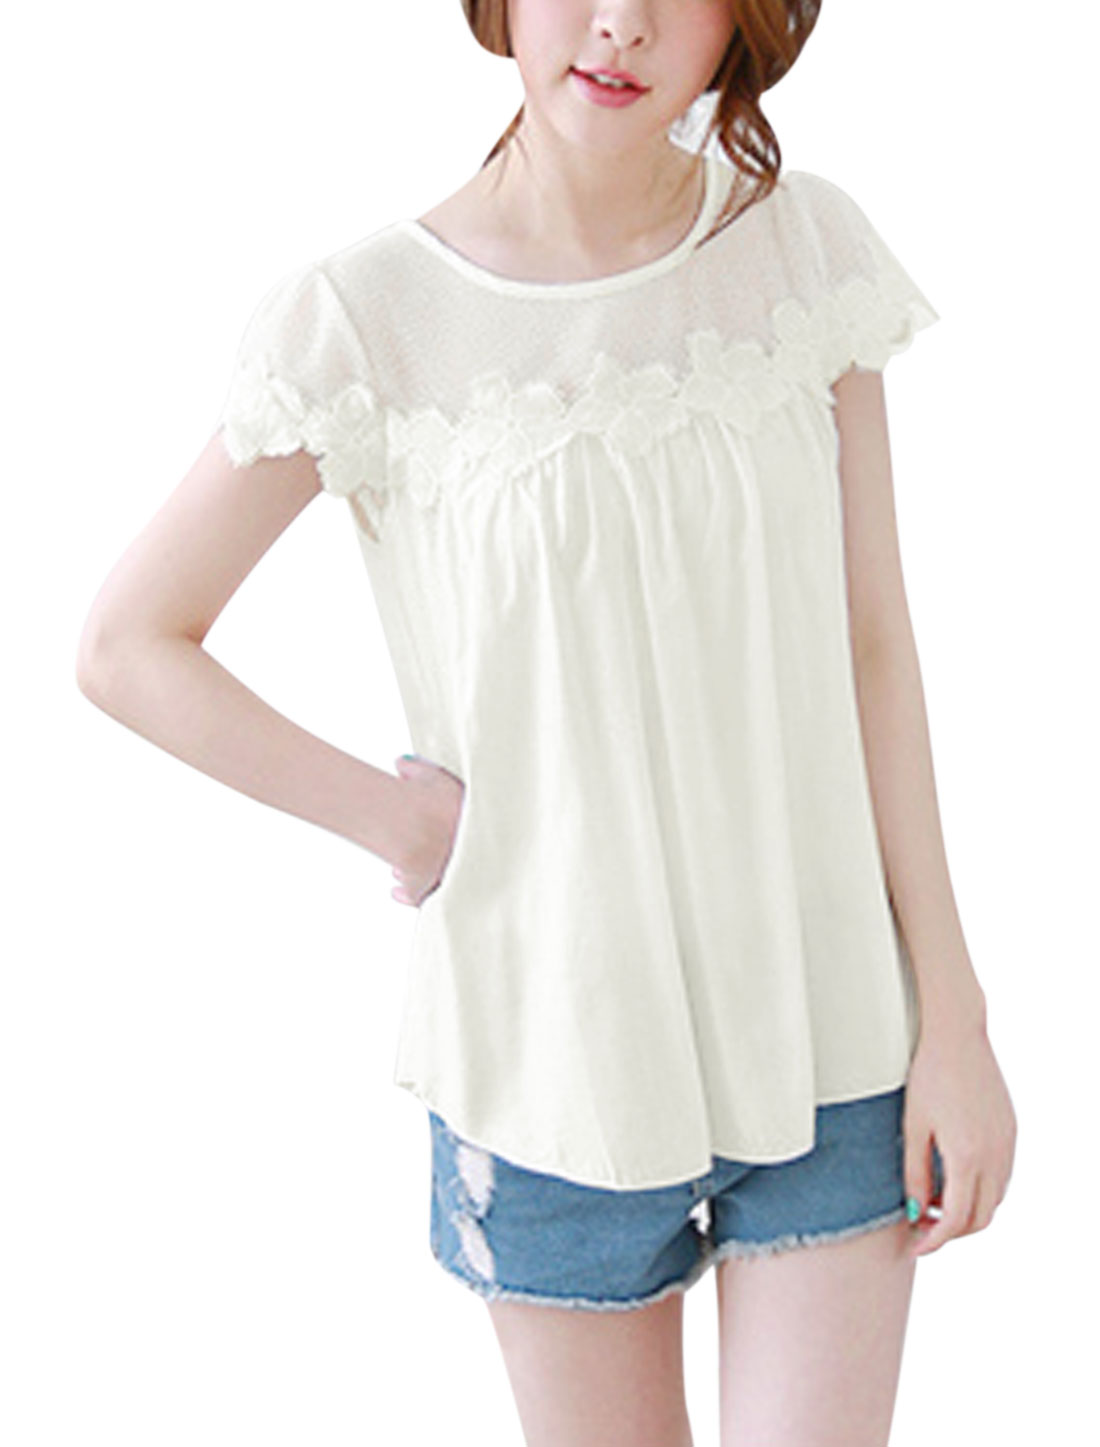 Women Round Neck Short Sleeve Hollow Out Crochet Casual Blouse Beige S